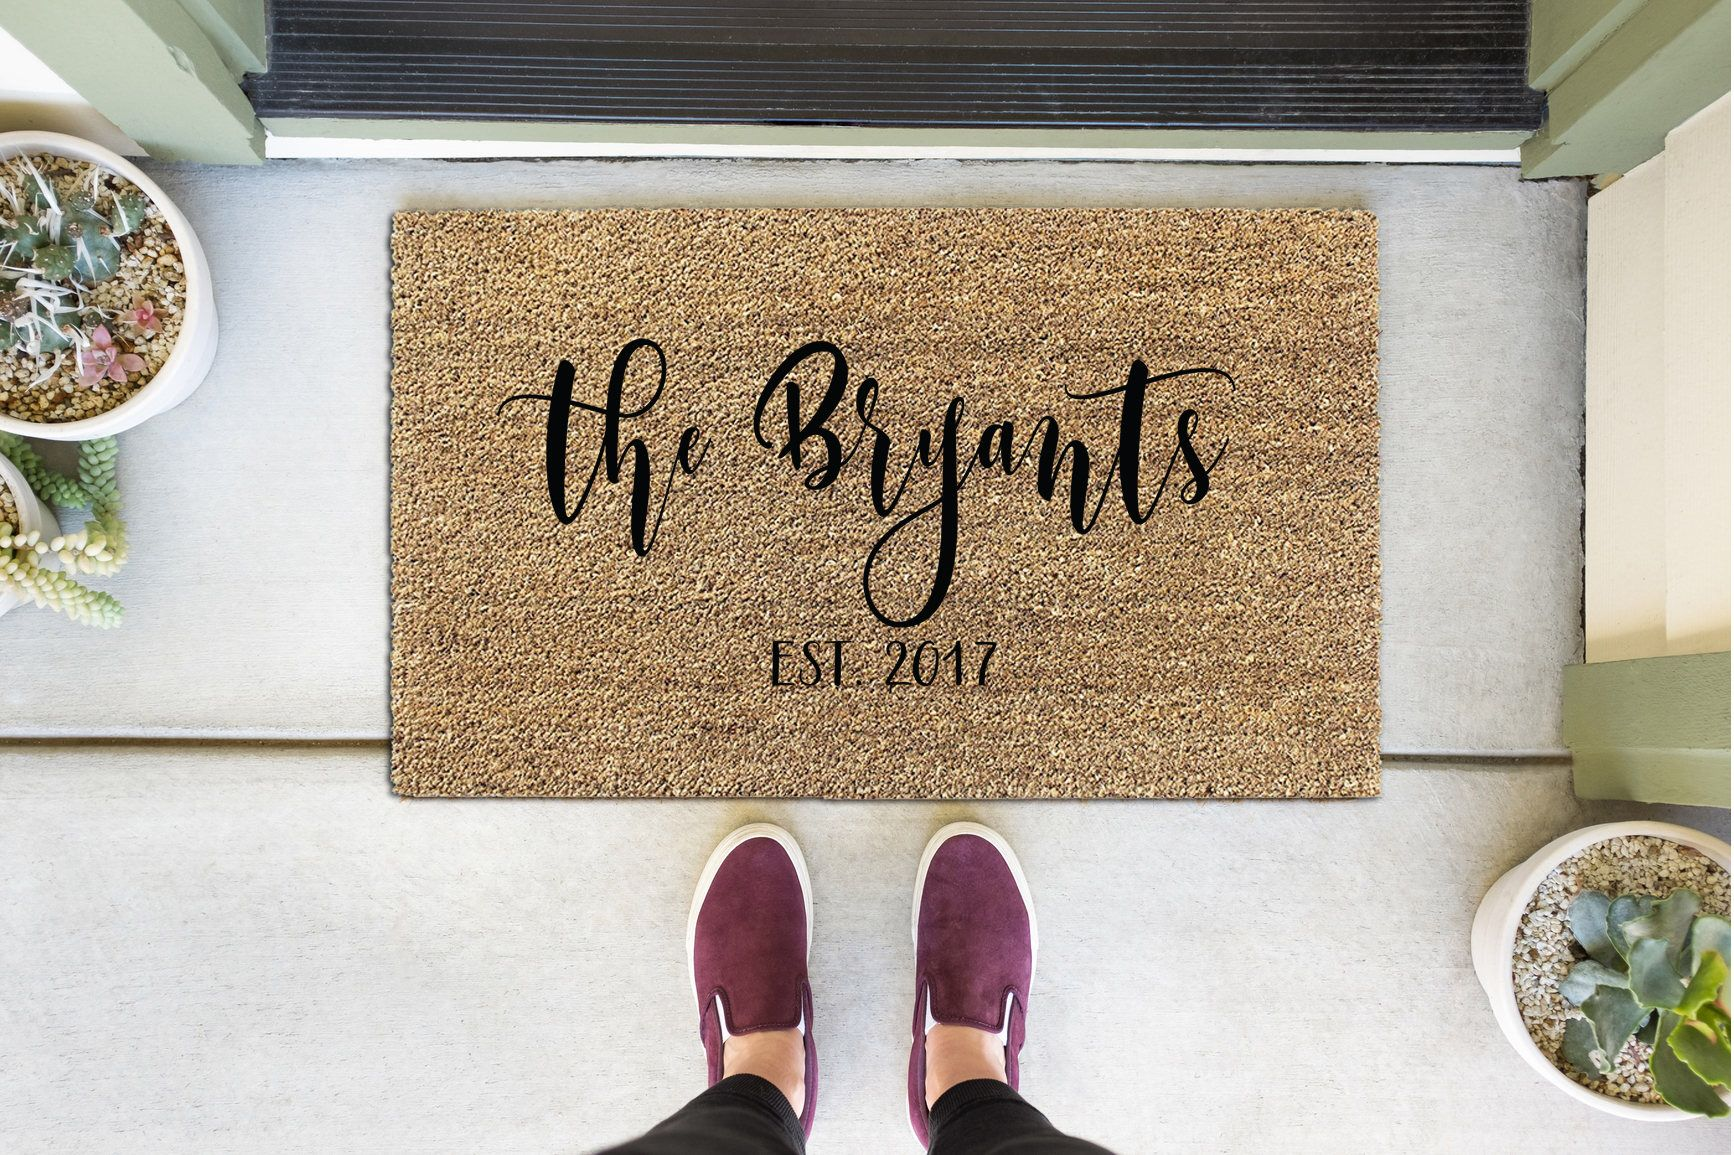 incredible full pages coloring ergonomic door inspirations image mat front doors made cut welcome customized diy for entry custom mats